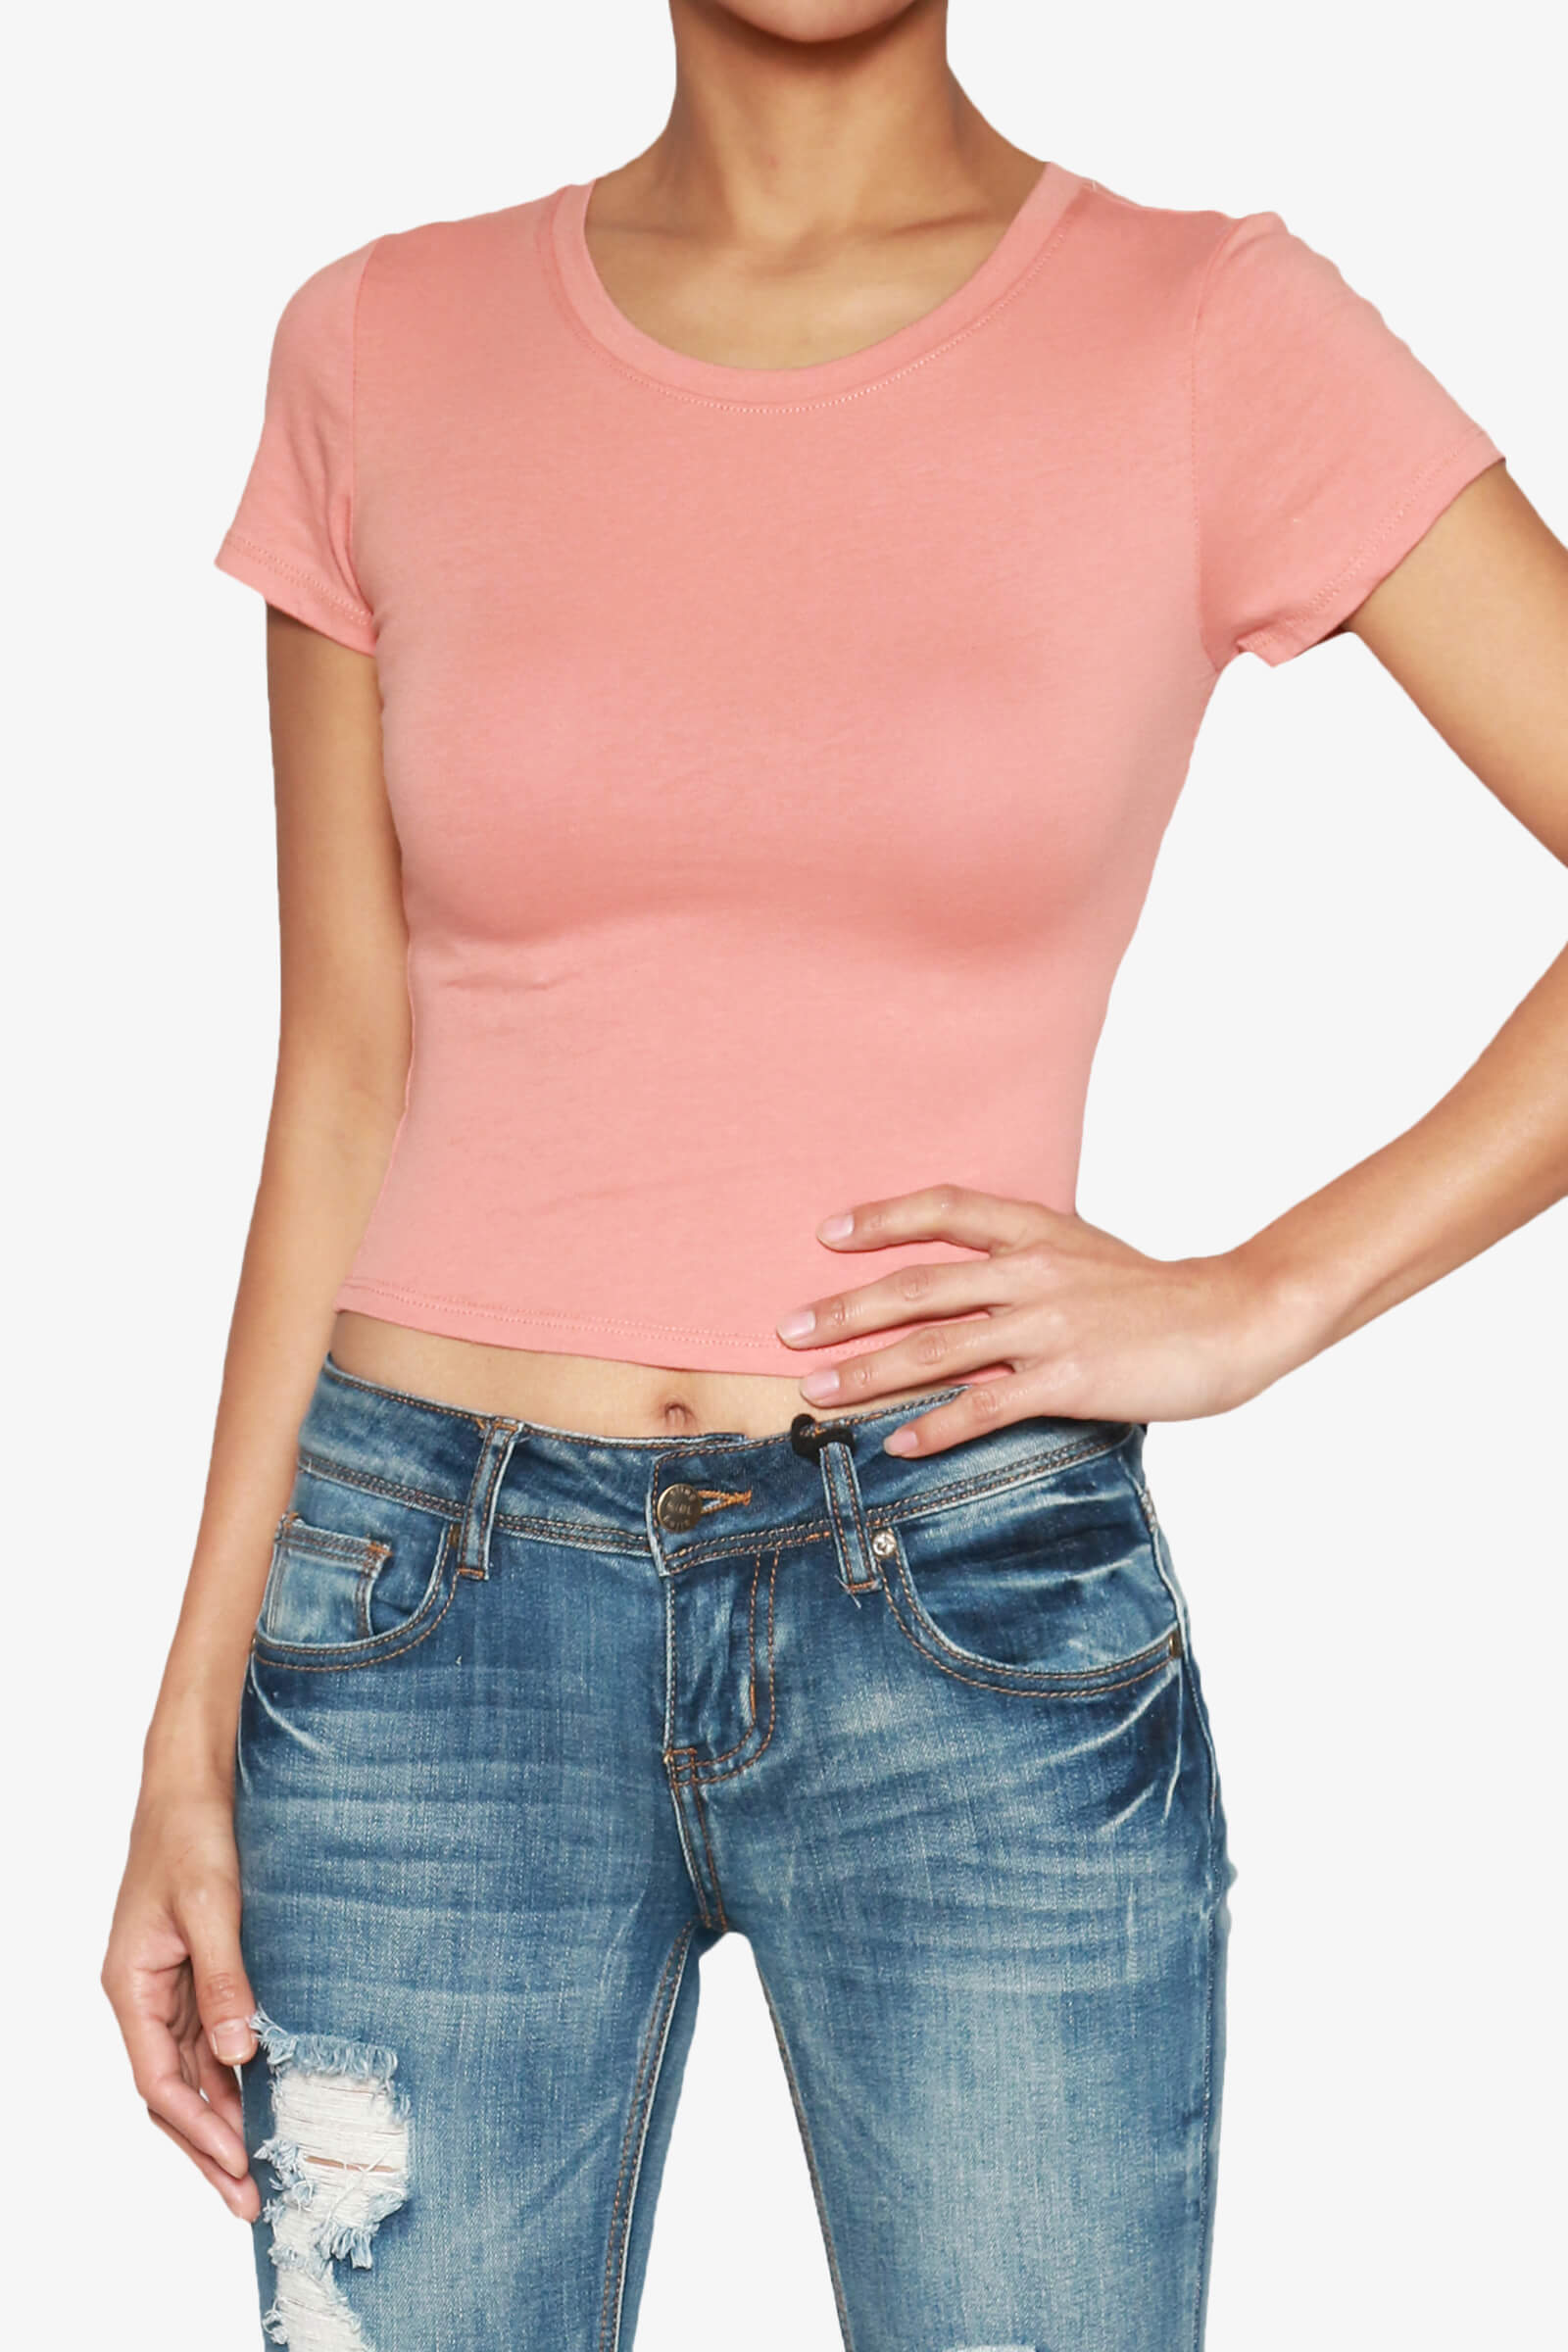 Slim fit, solid color, basic type, round neck, short sleeve, crop top You can wear this crop top shirt under a cardigan or sweater for a fashionable layered look. On summer, wear it /5().